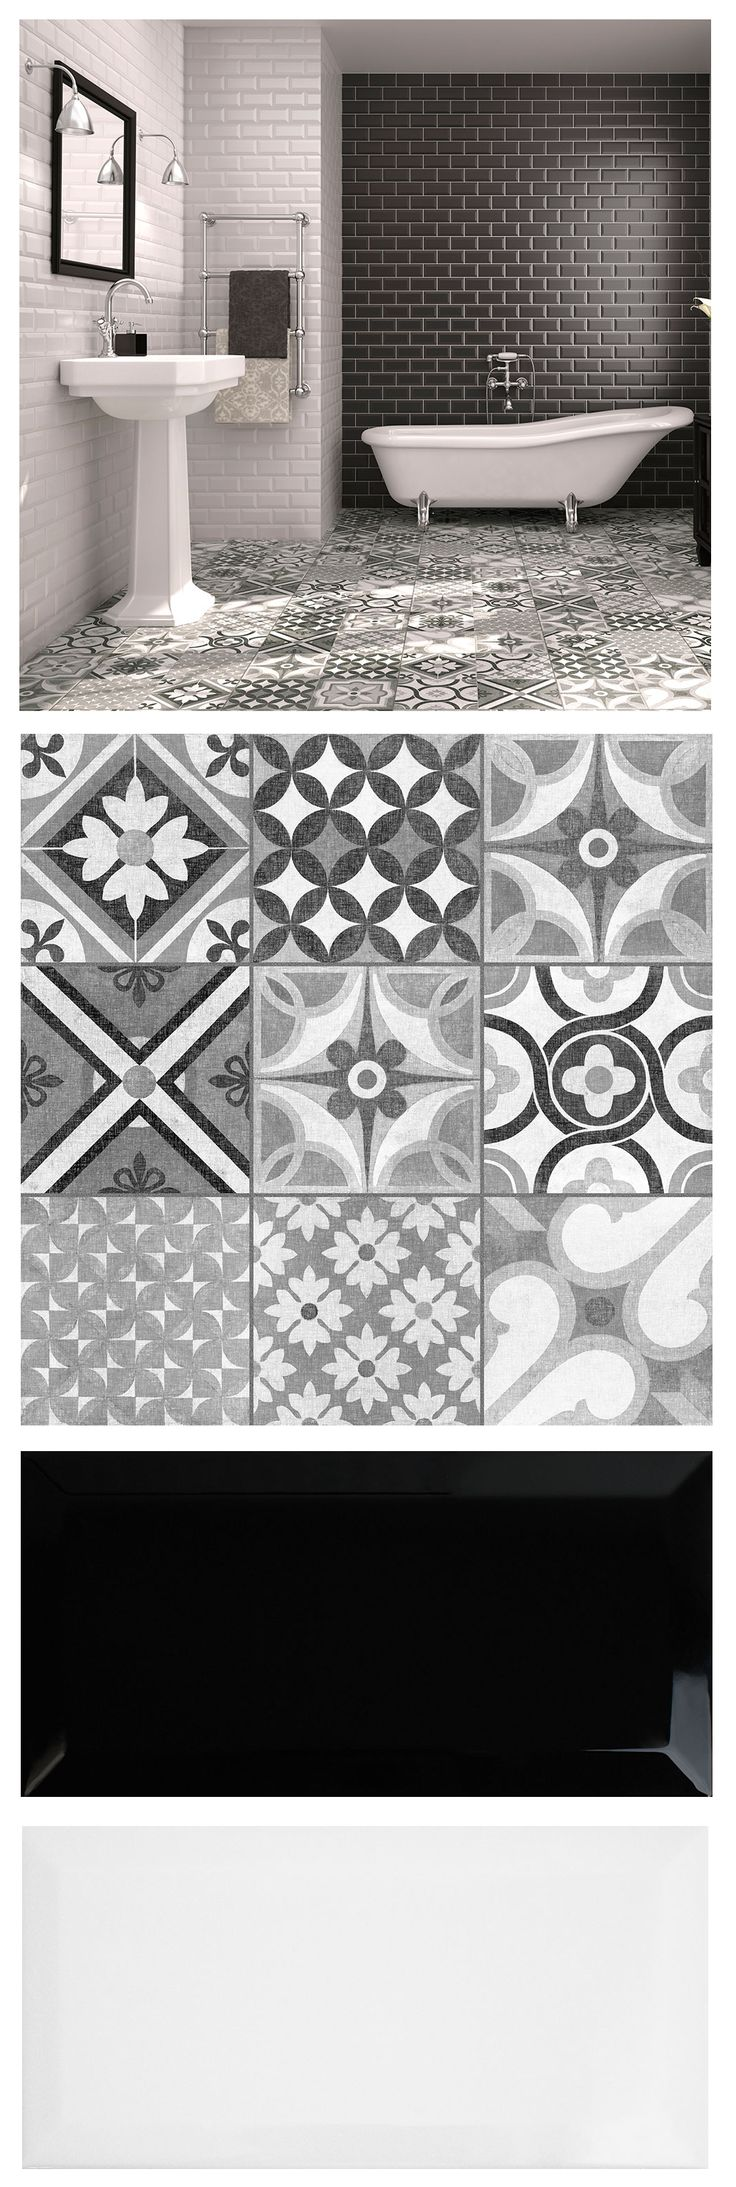 Mix Brick Shaped Metros And Patterned Zeinah Tiles For A Striking  Monochrome / Moroccan Mash Up In A Bathroom Or Kitchen! Eyebrow Makeup Tips